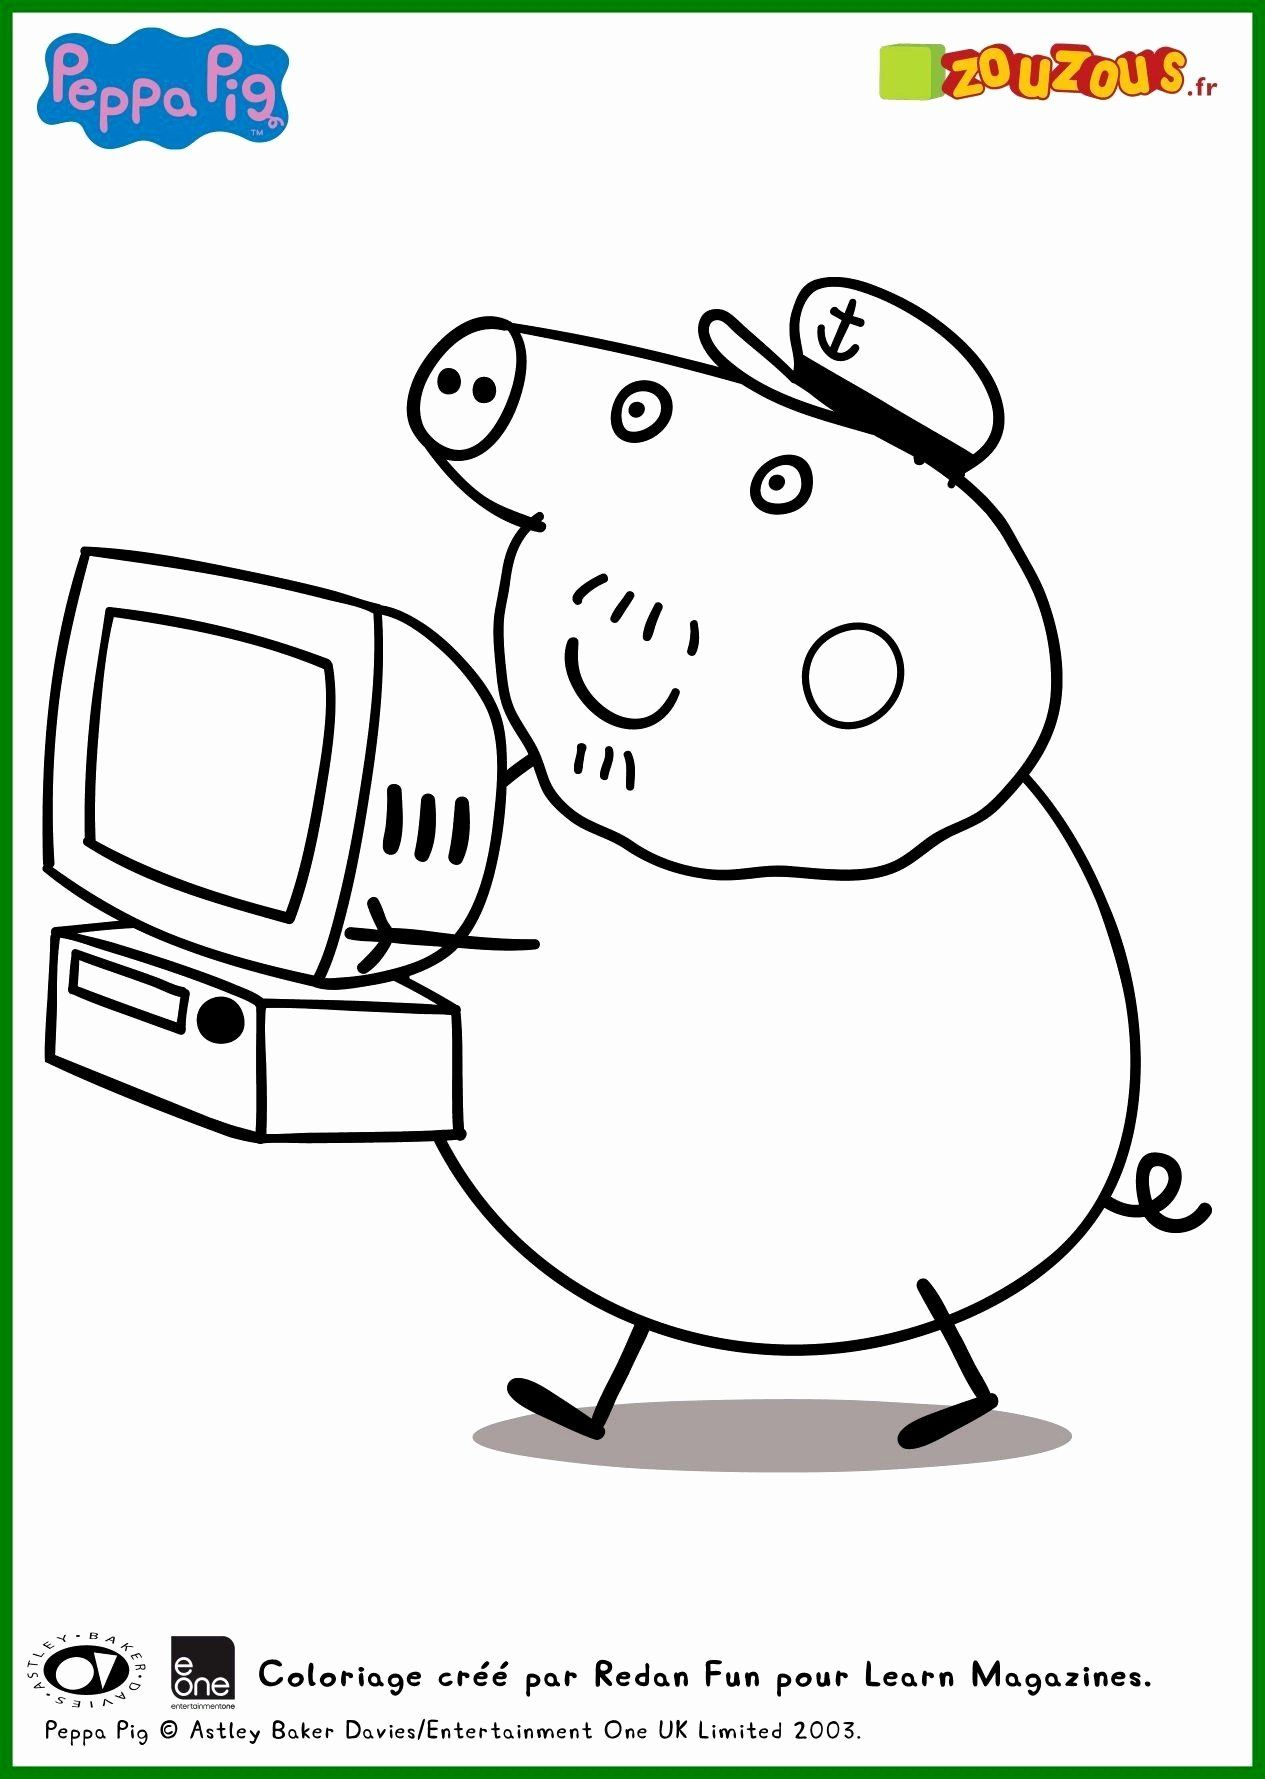 Patriots Coloring Pages Free Luxury Awesome New York Jets Coloring Pages Nicho Peppa Pig Coloring Pages Animal Coloring Books Birthday Coloring Pages